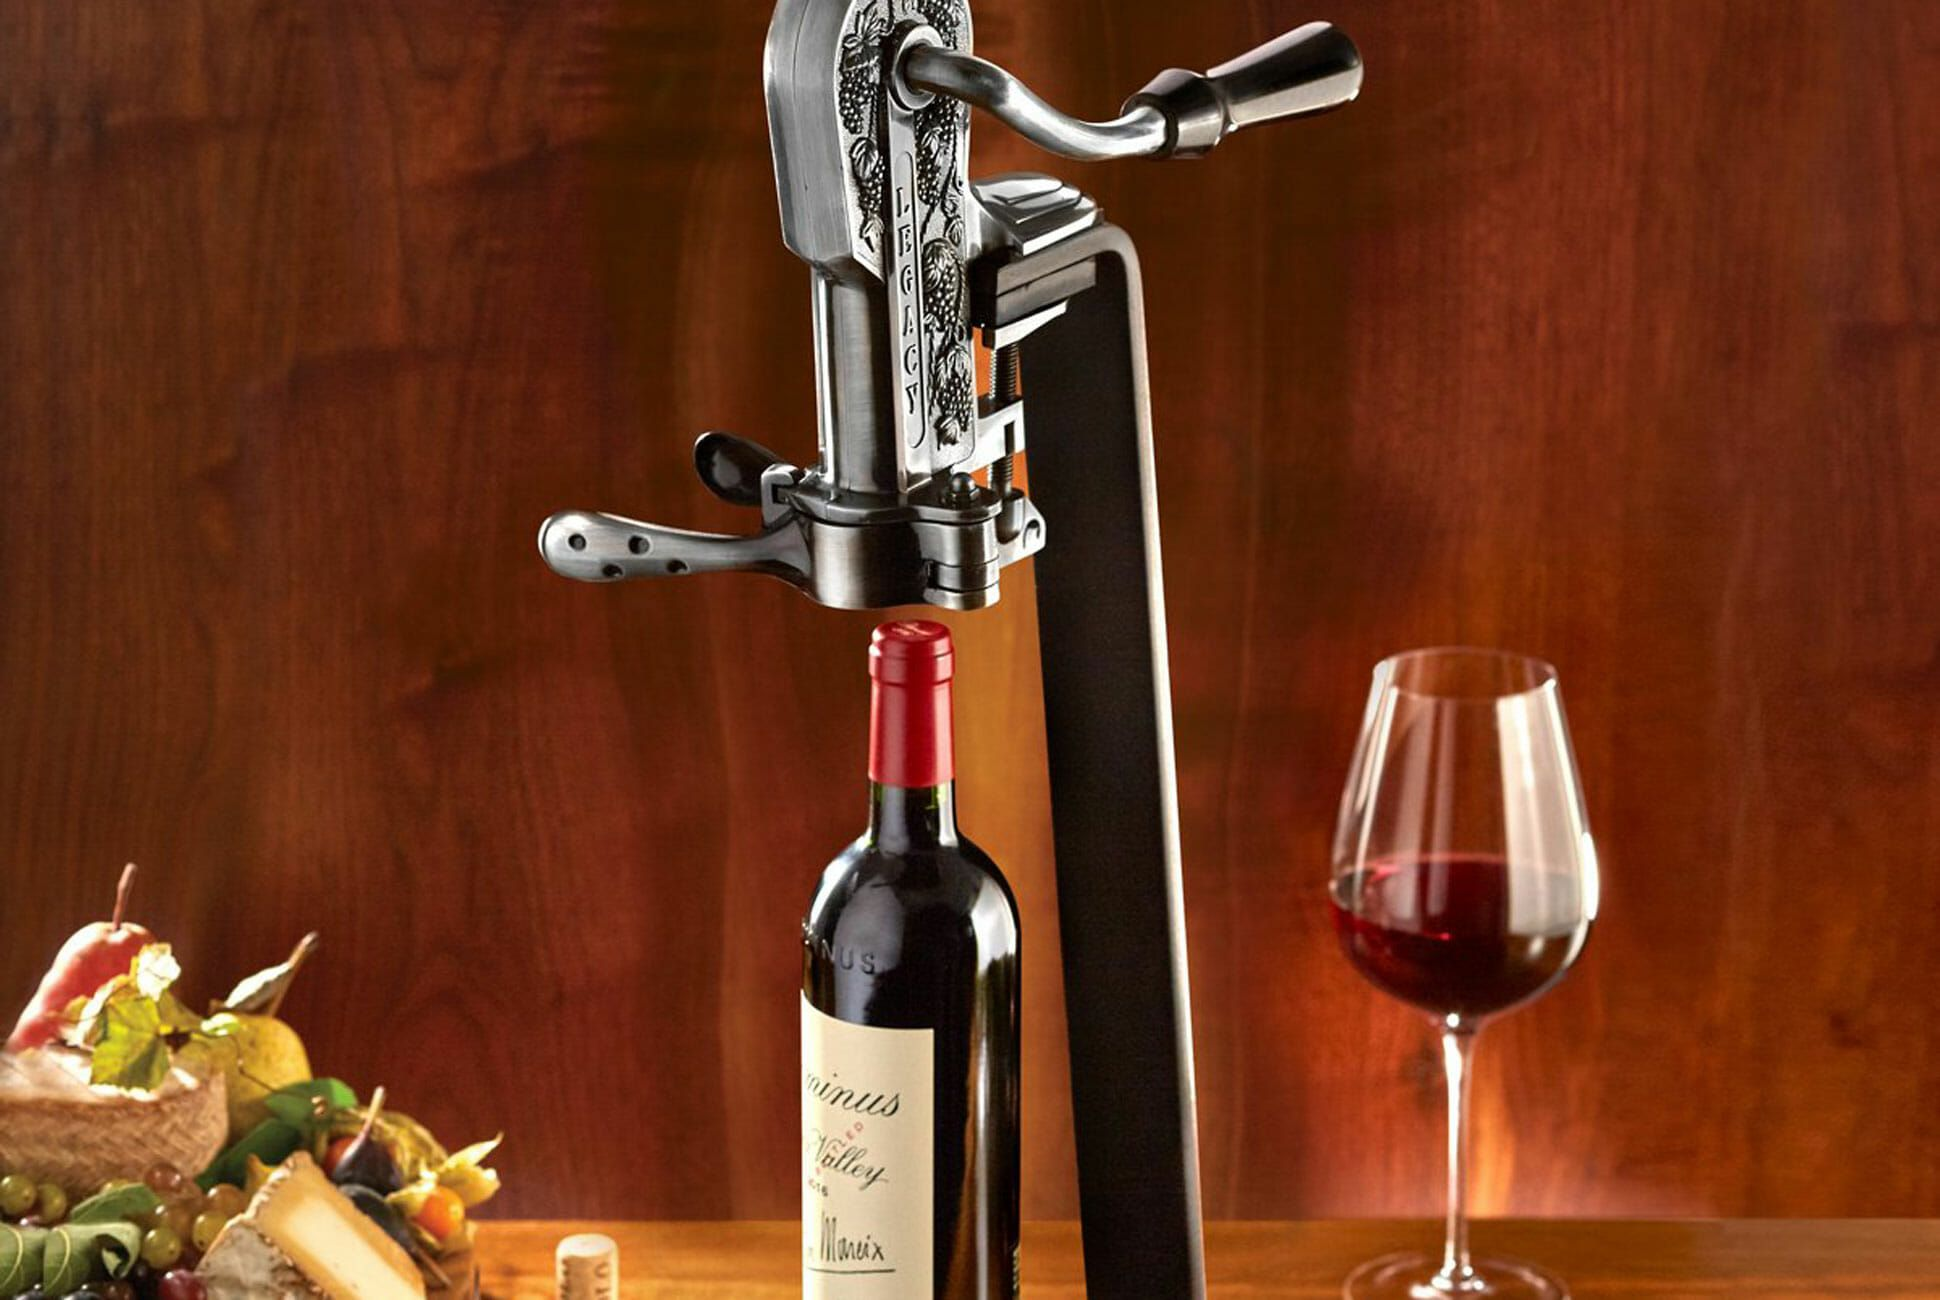 Best Wine Openers 2021 The Best Wine Opener Is (Almost) The Cheapest • Gear Patrol